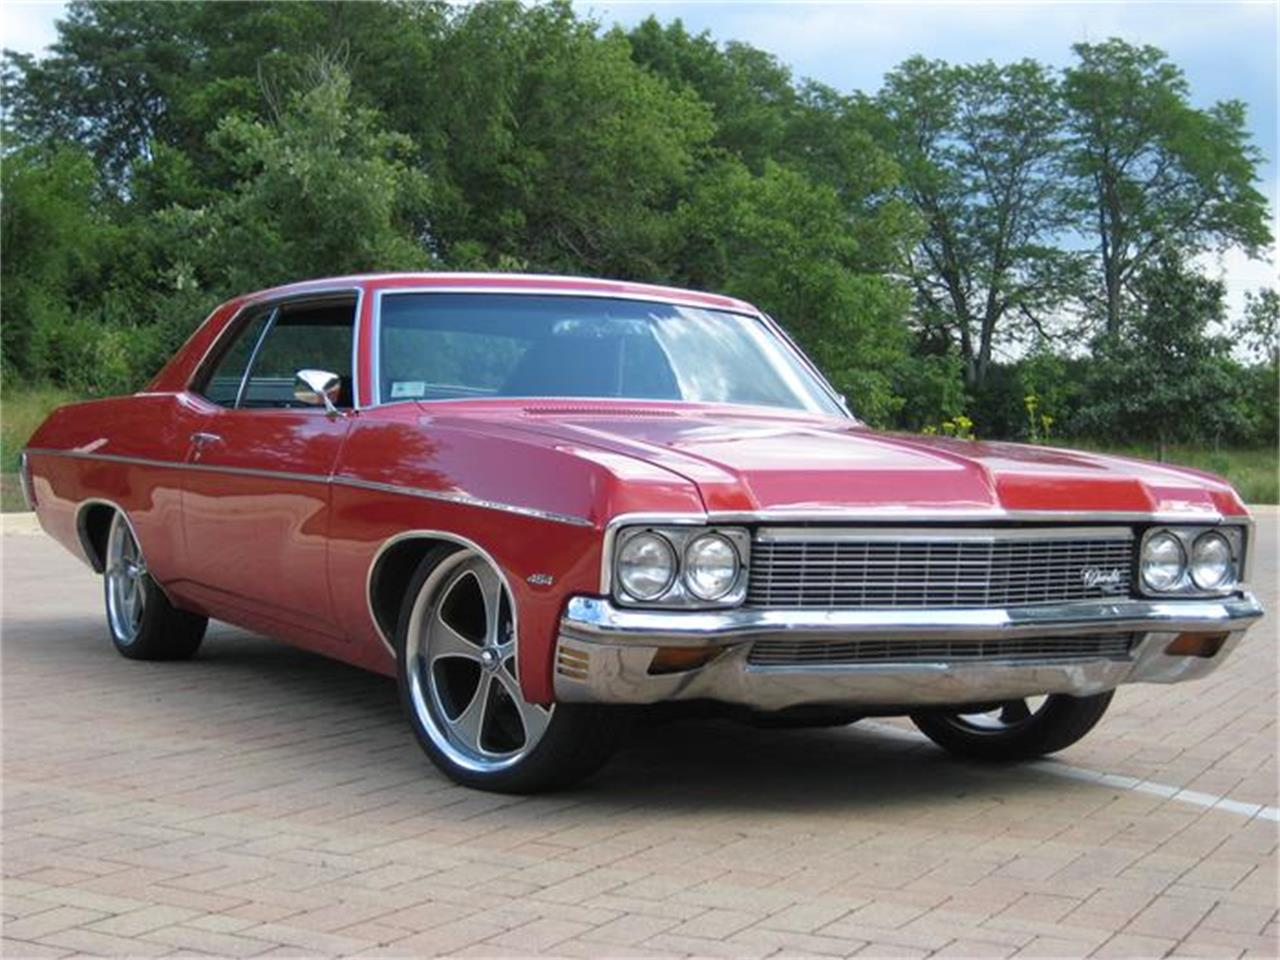 Large Picture of Classic 1970 Chevrolet Impala located in Illinois - $22,995.00 Offered by Classic Auto Haus - F45R